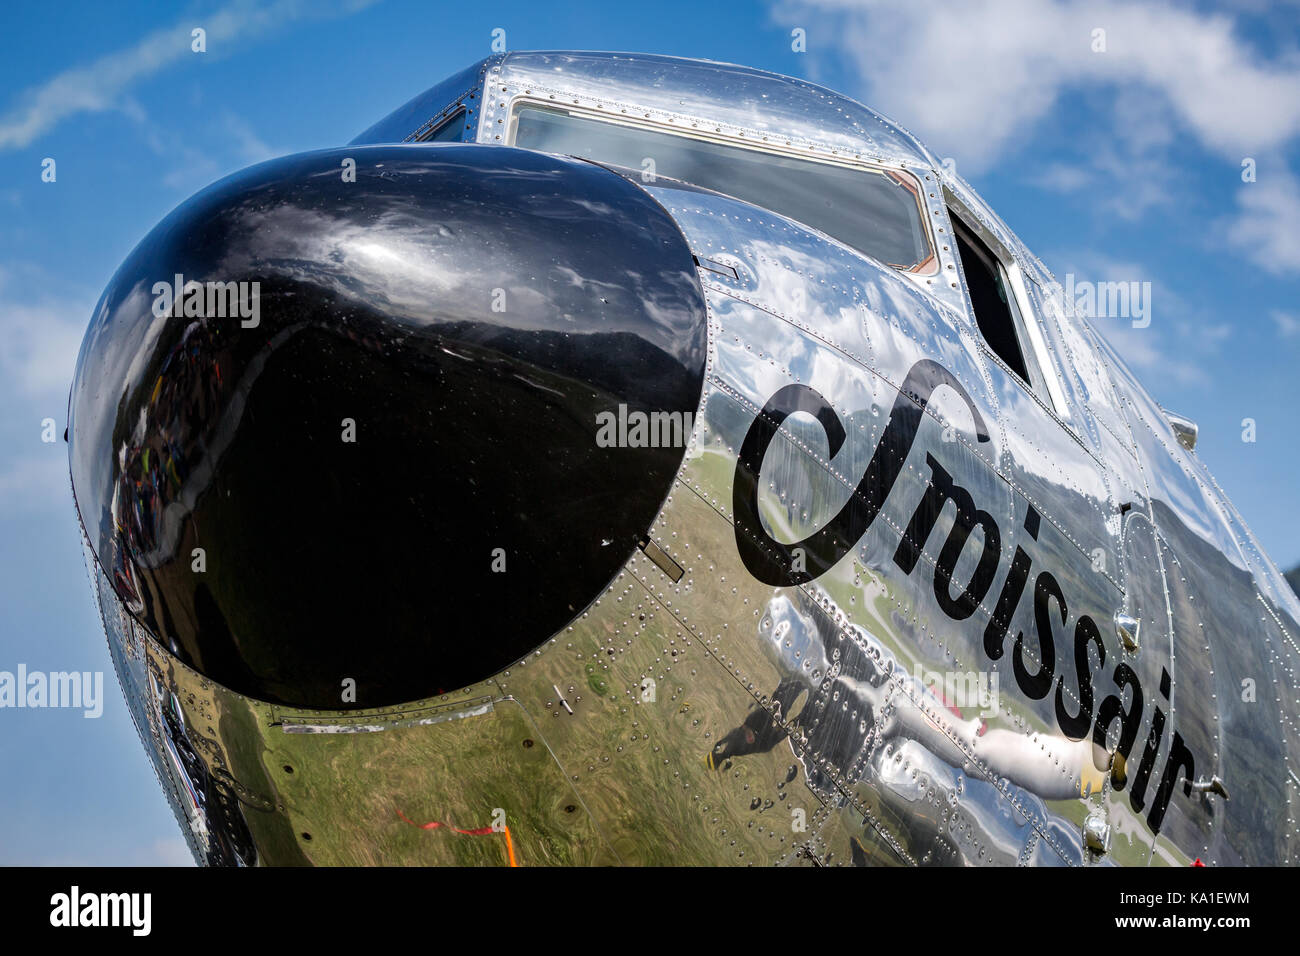 Close up of a Douglas DC-3, propeller airliner, Sion Airshow, Sion, Valais, Switzerland - Stock Image